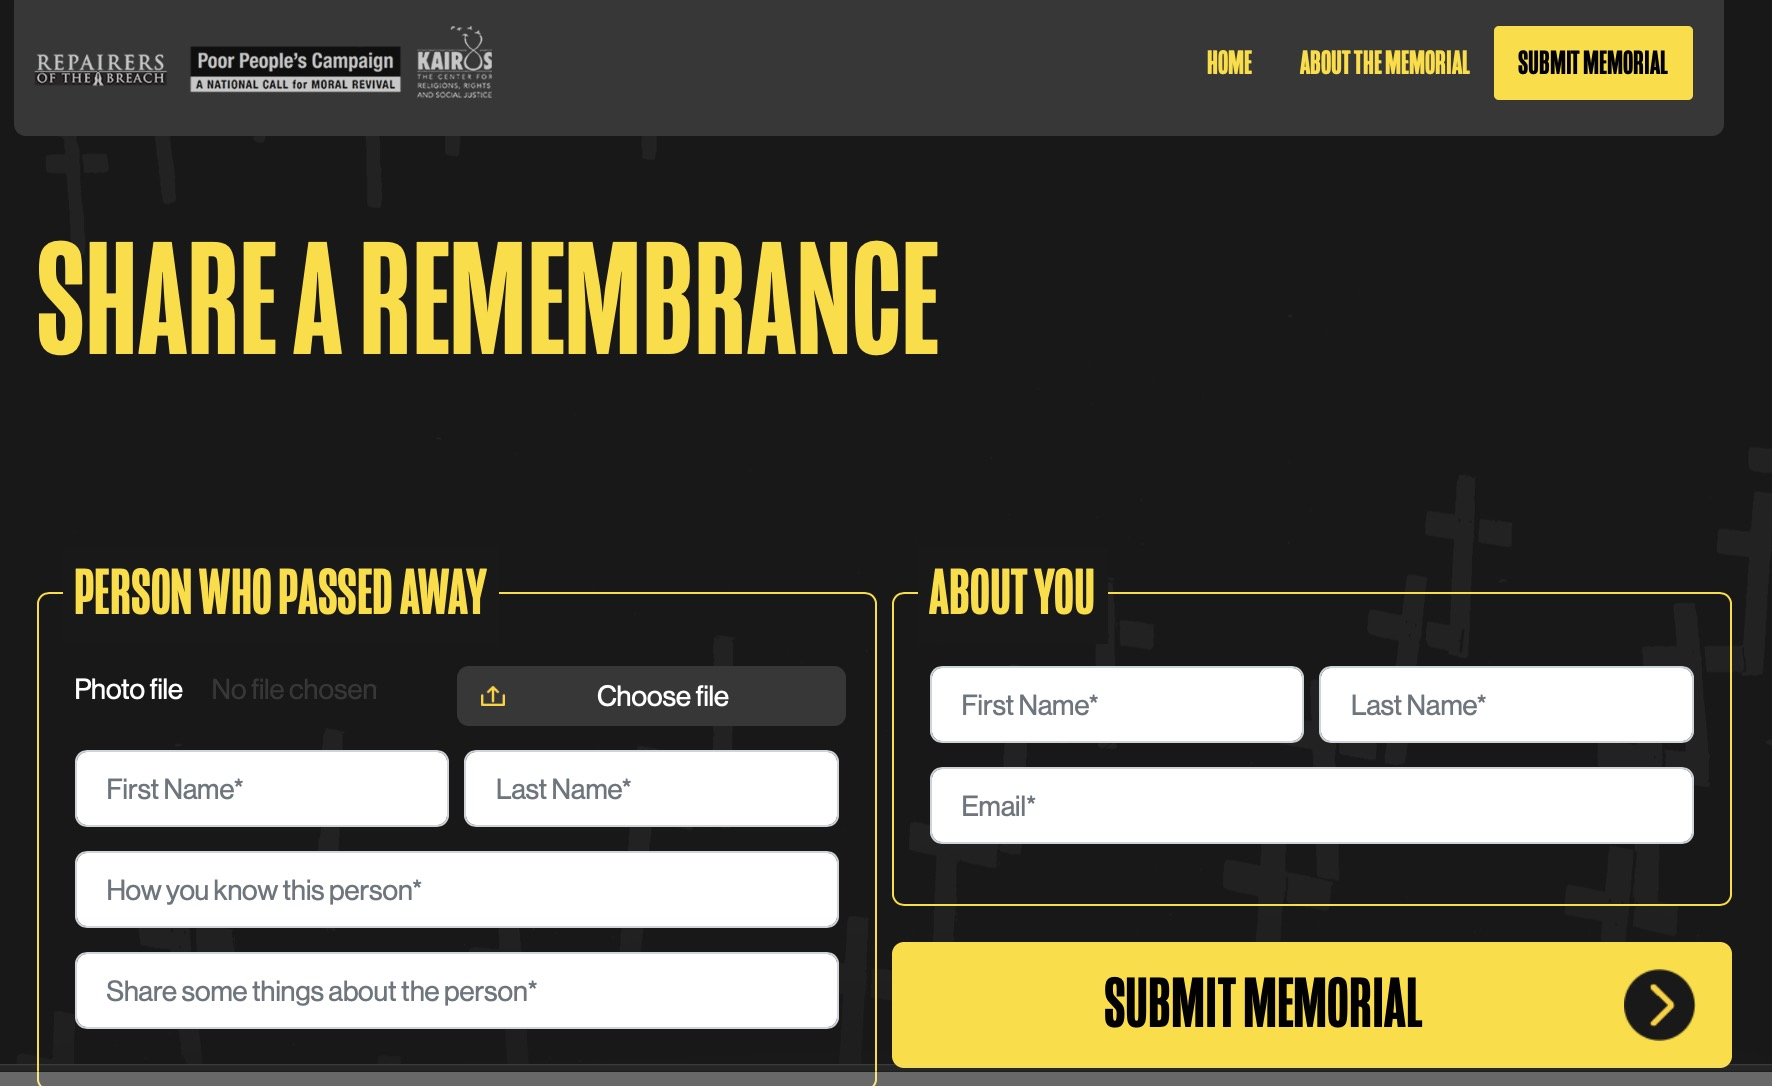 Poor People's Campaign remembrance wall app